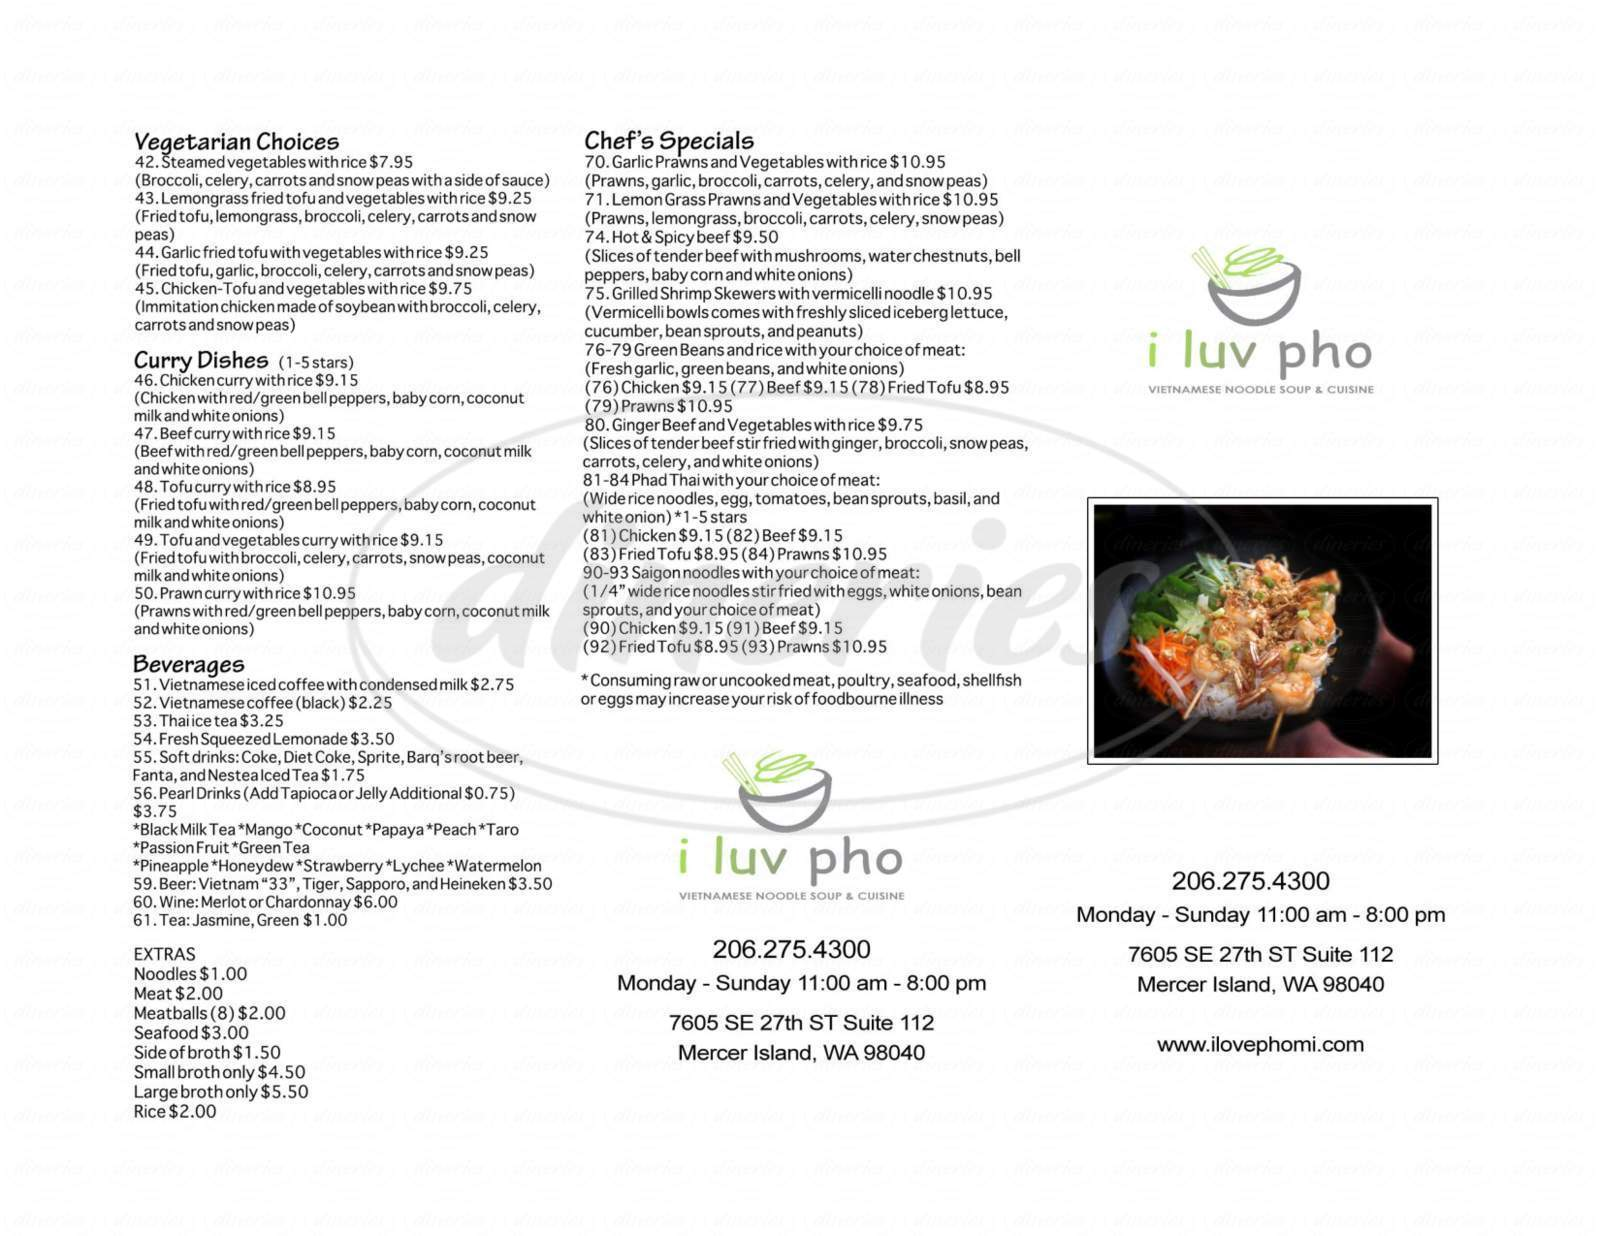 menu for I Love Pho